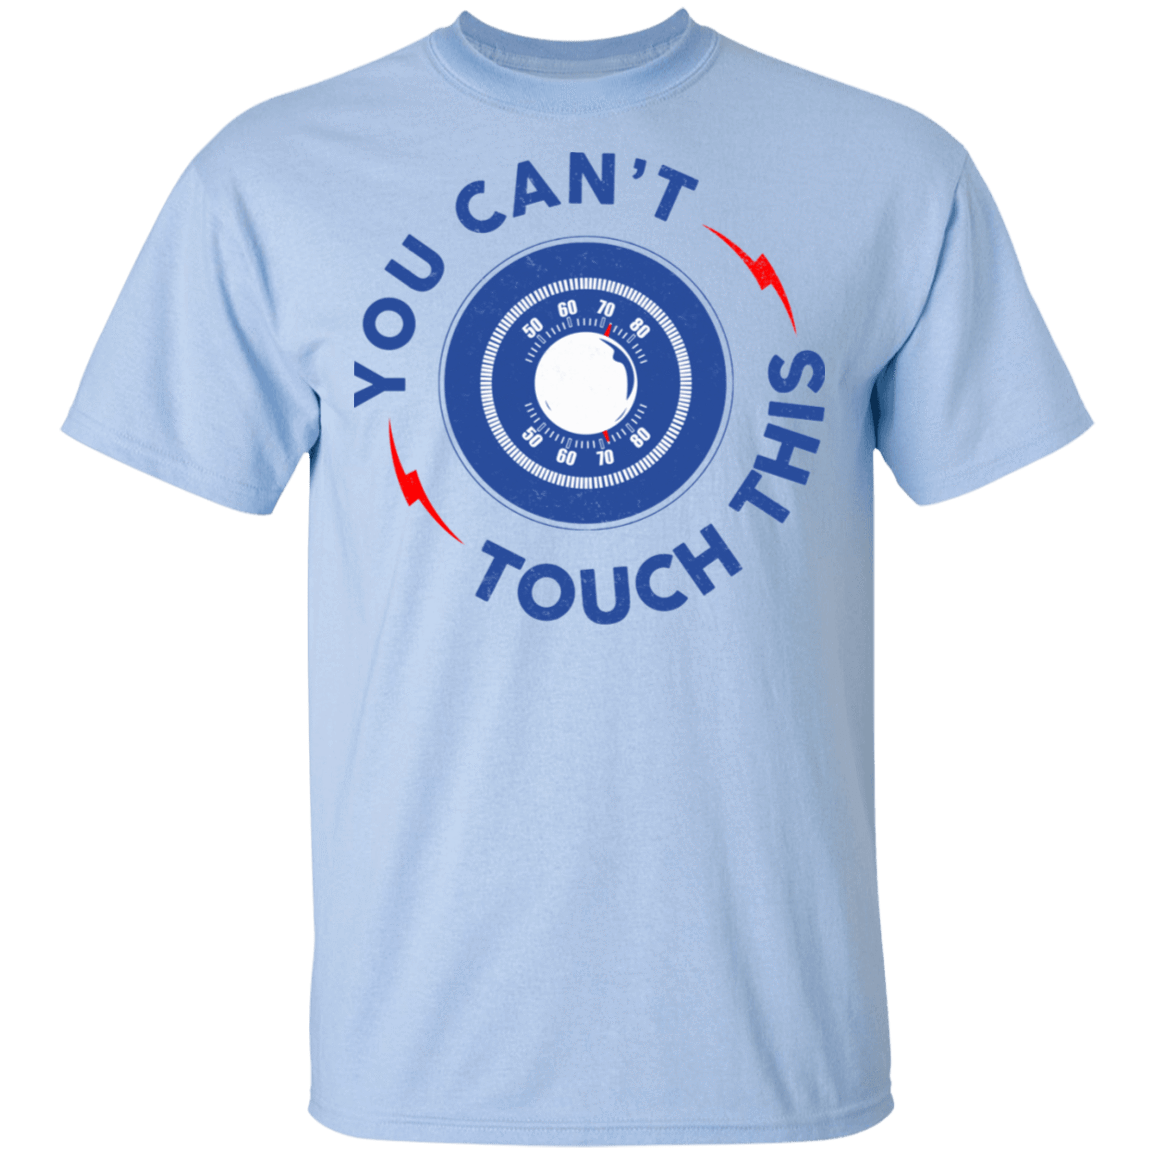 You Can't Touch This T-Shirts, Hoodies, Tank 22-9800-79999090-47430 - Tee Ript